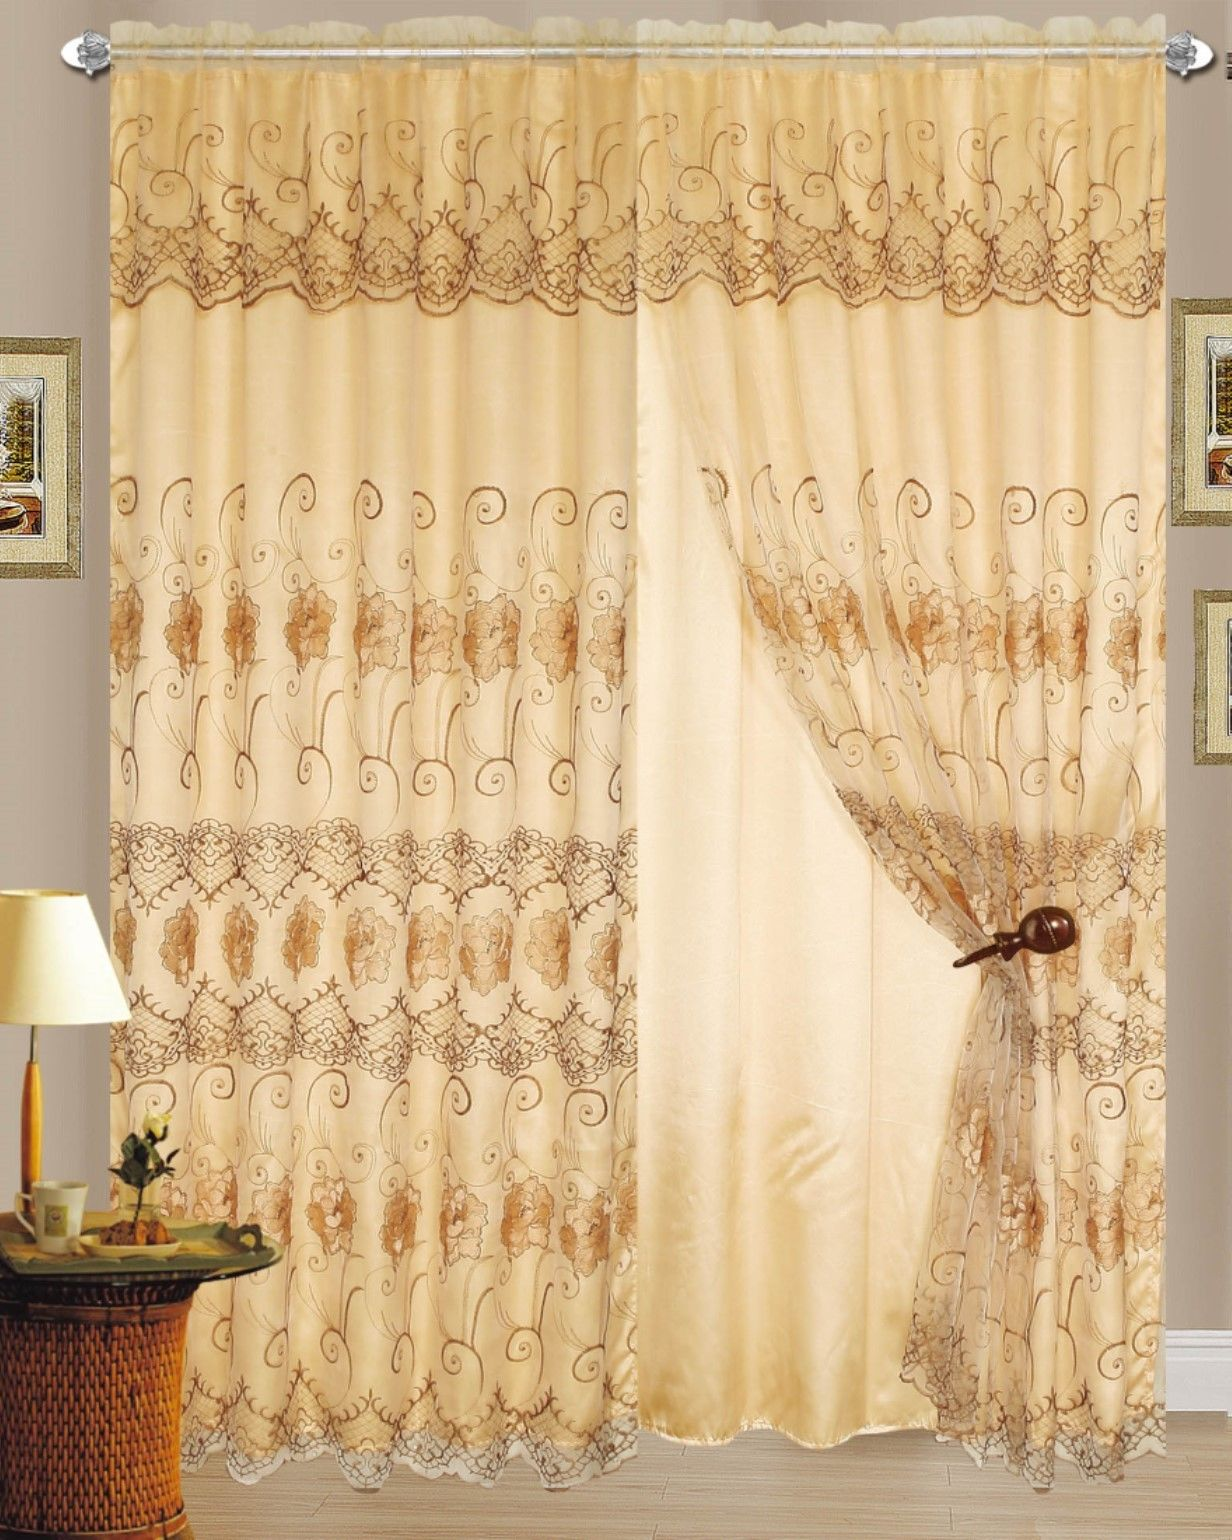 Mustard Curtain Panels | Magenta Curtains Drapes | Embroidered Curtains